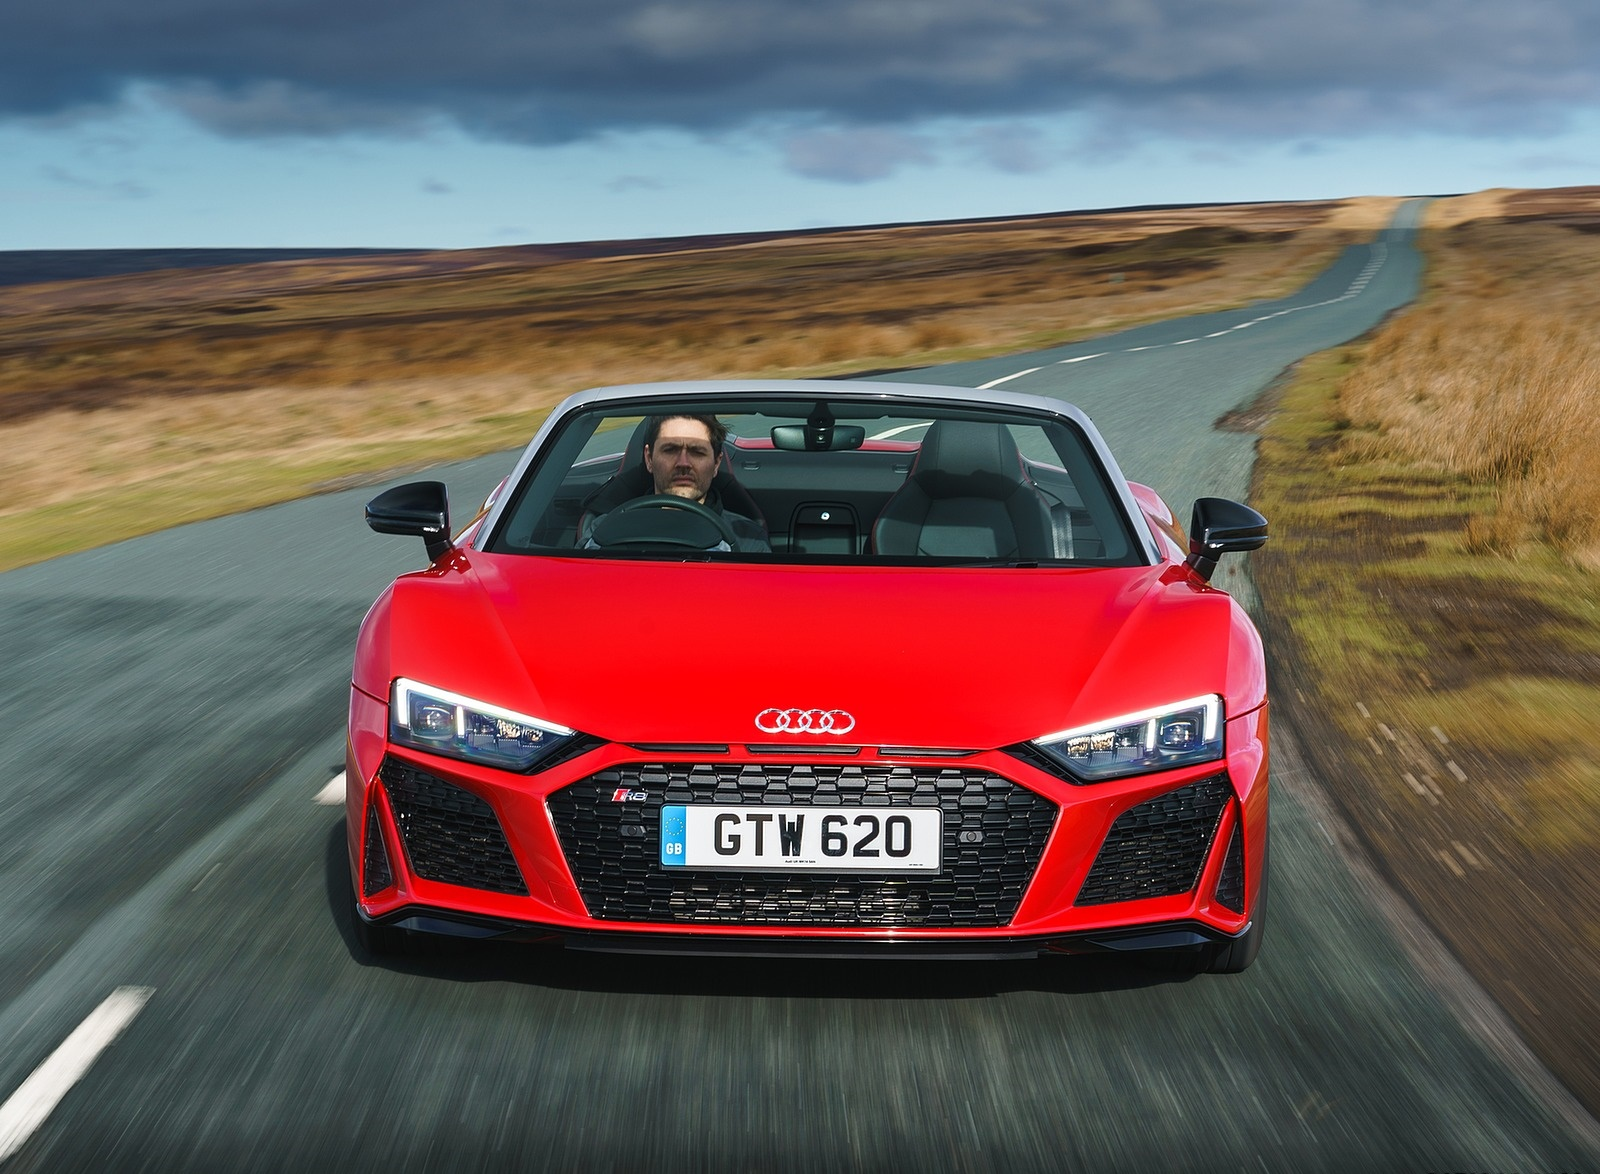 2019 Audi R8 Spyder Uk Spec Wallpapers 100 Hd Images Newcarcars